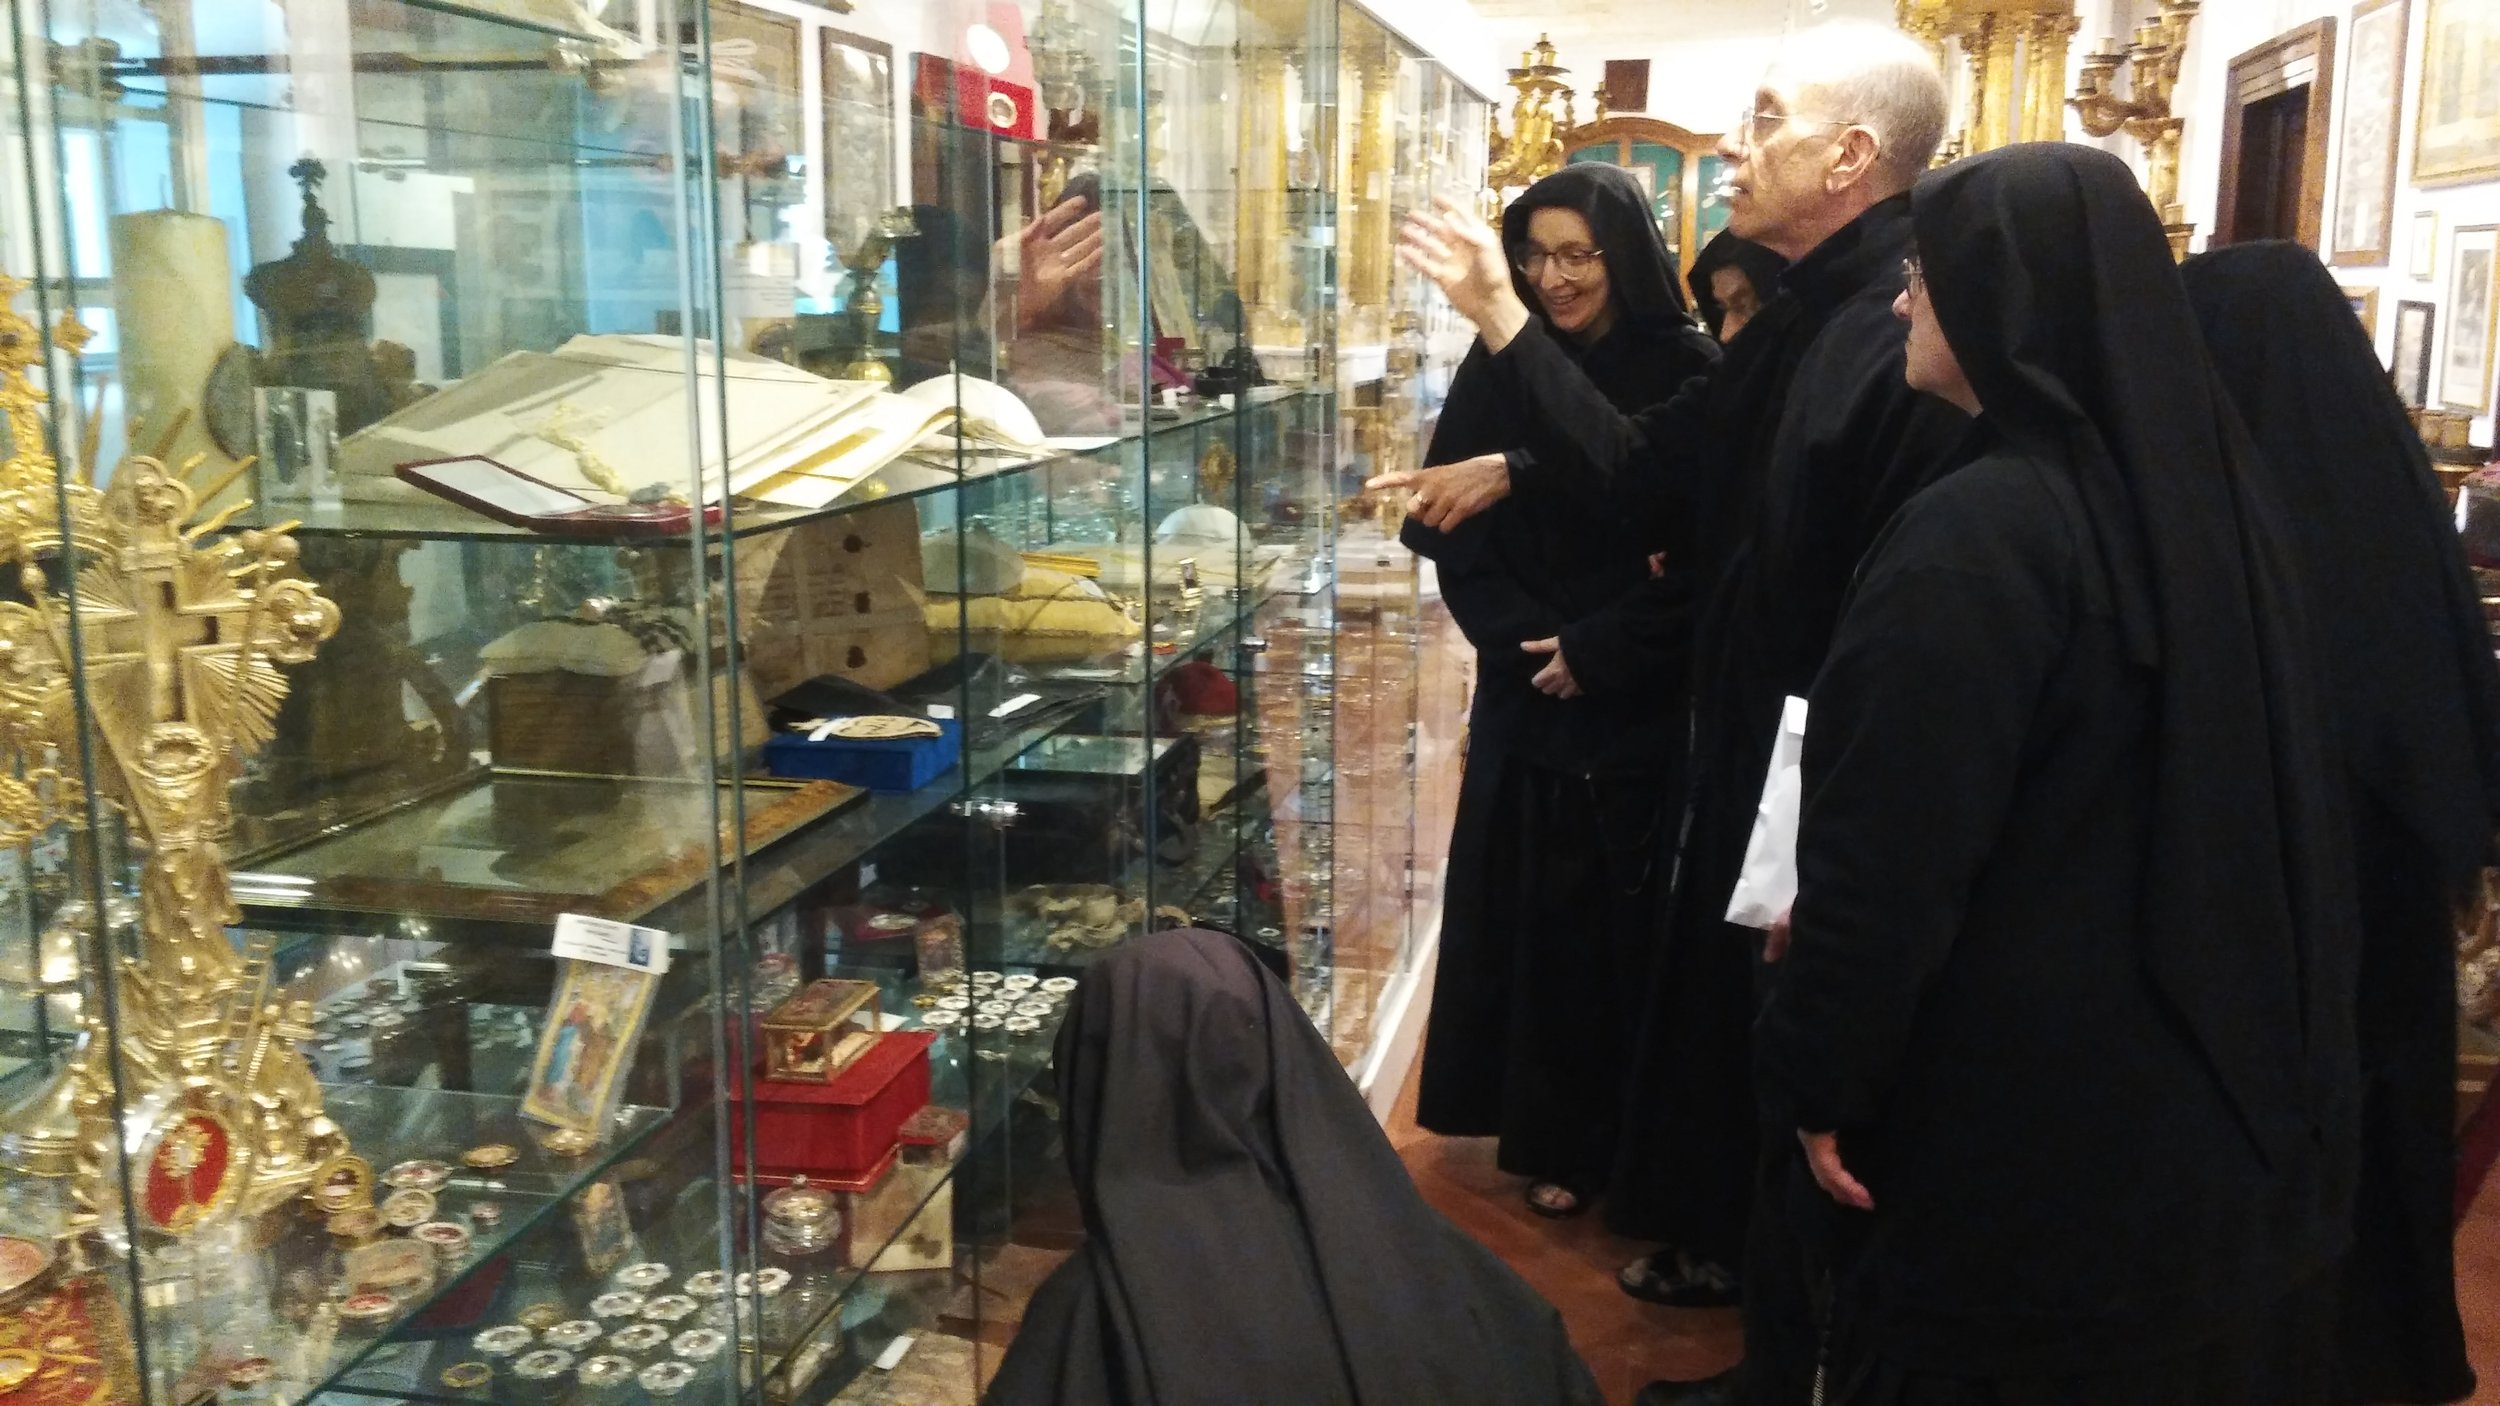 Fr. Lawrence gives some of the nuns a tour of the museum at Sts. John & Paul Passionist Generalate in Rome.  So many relics and antique religious items!